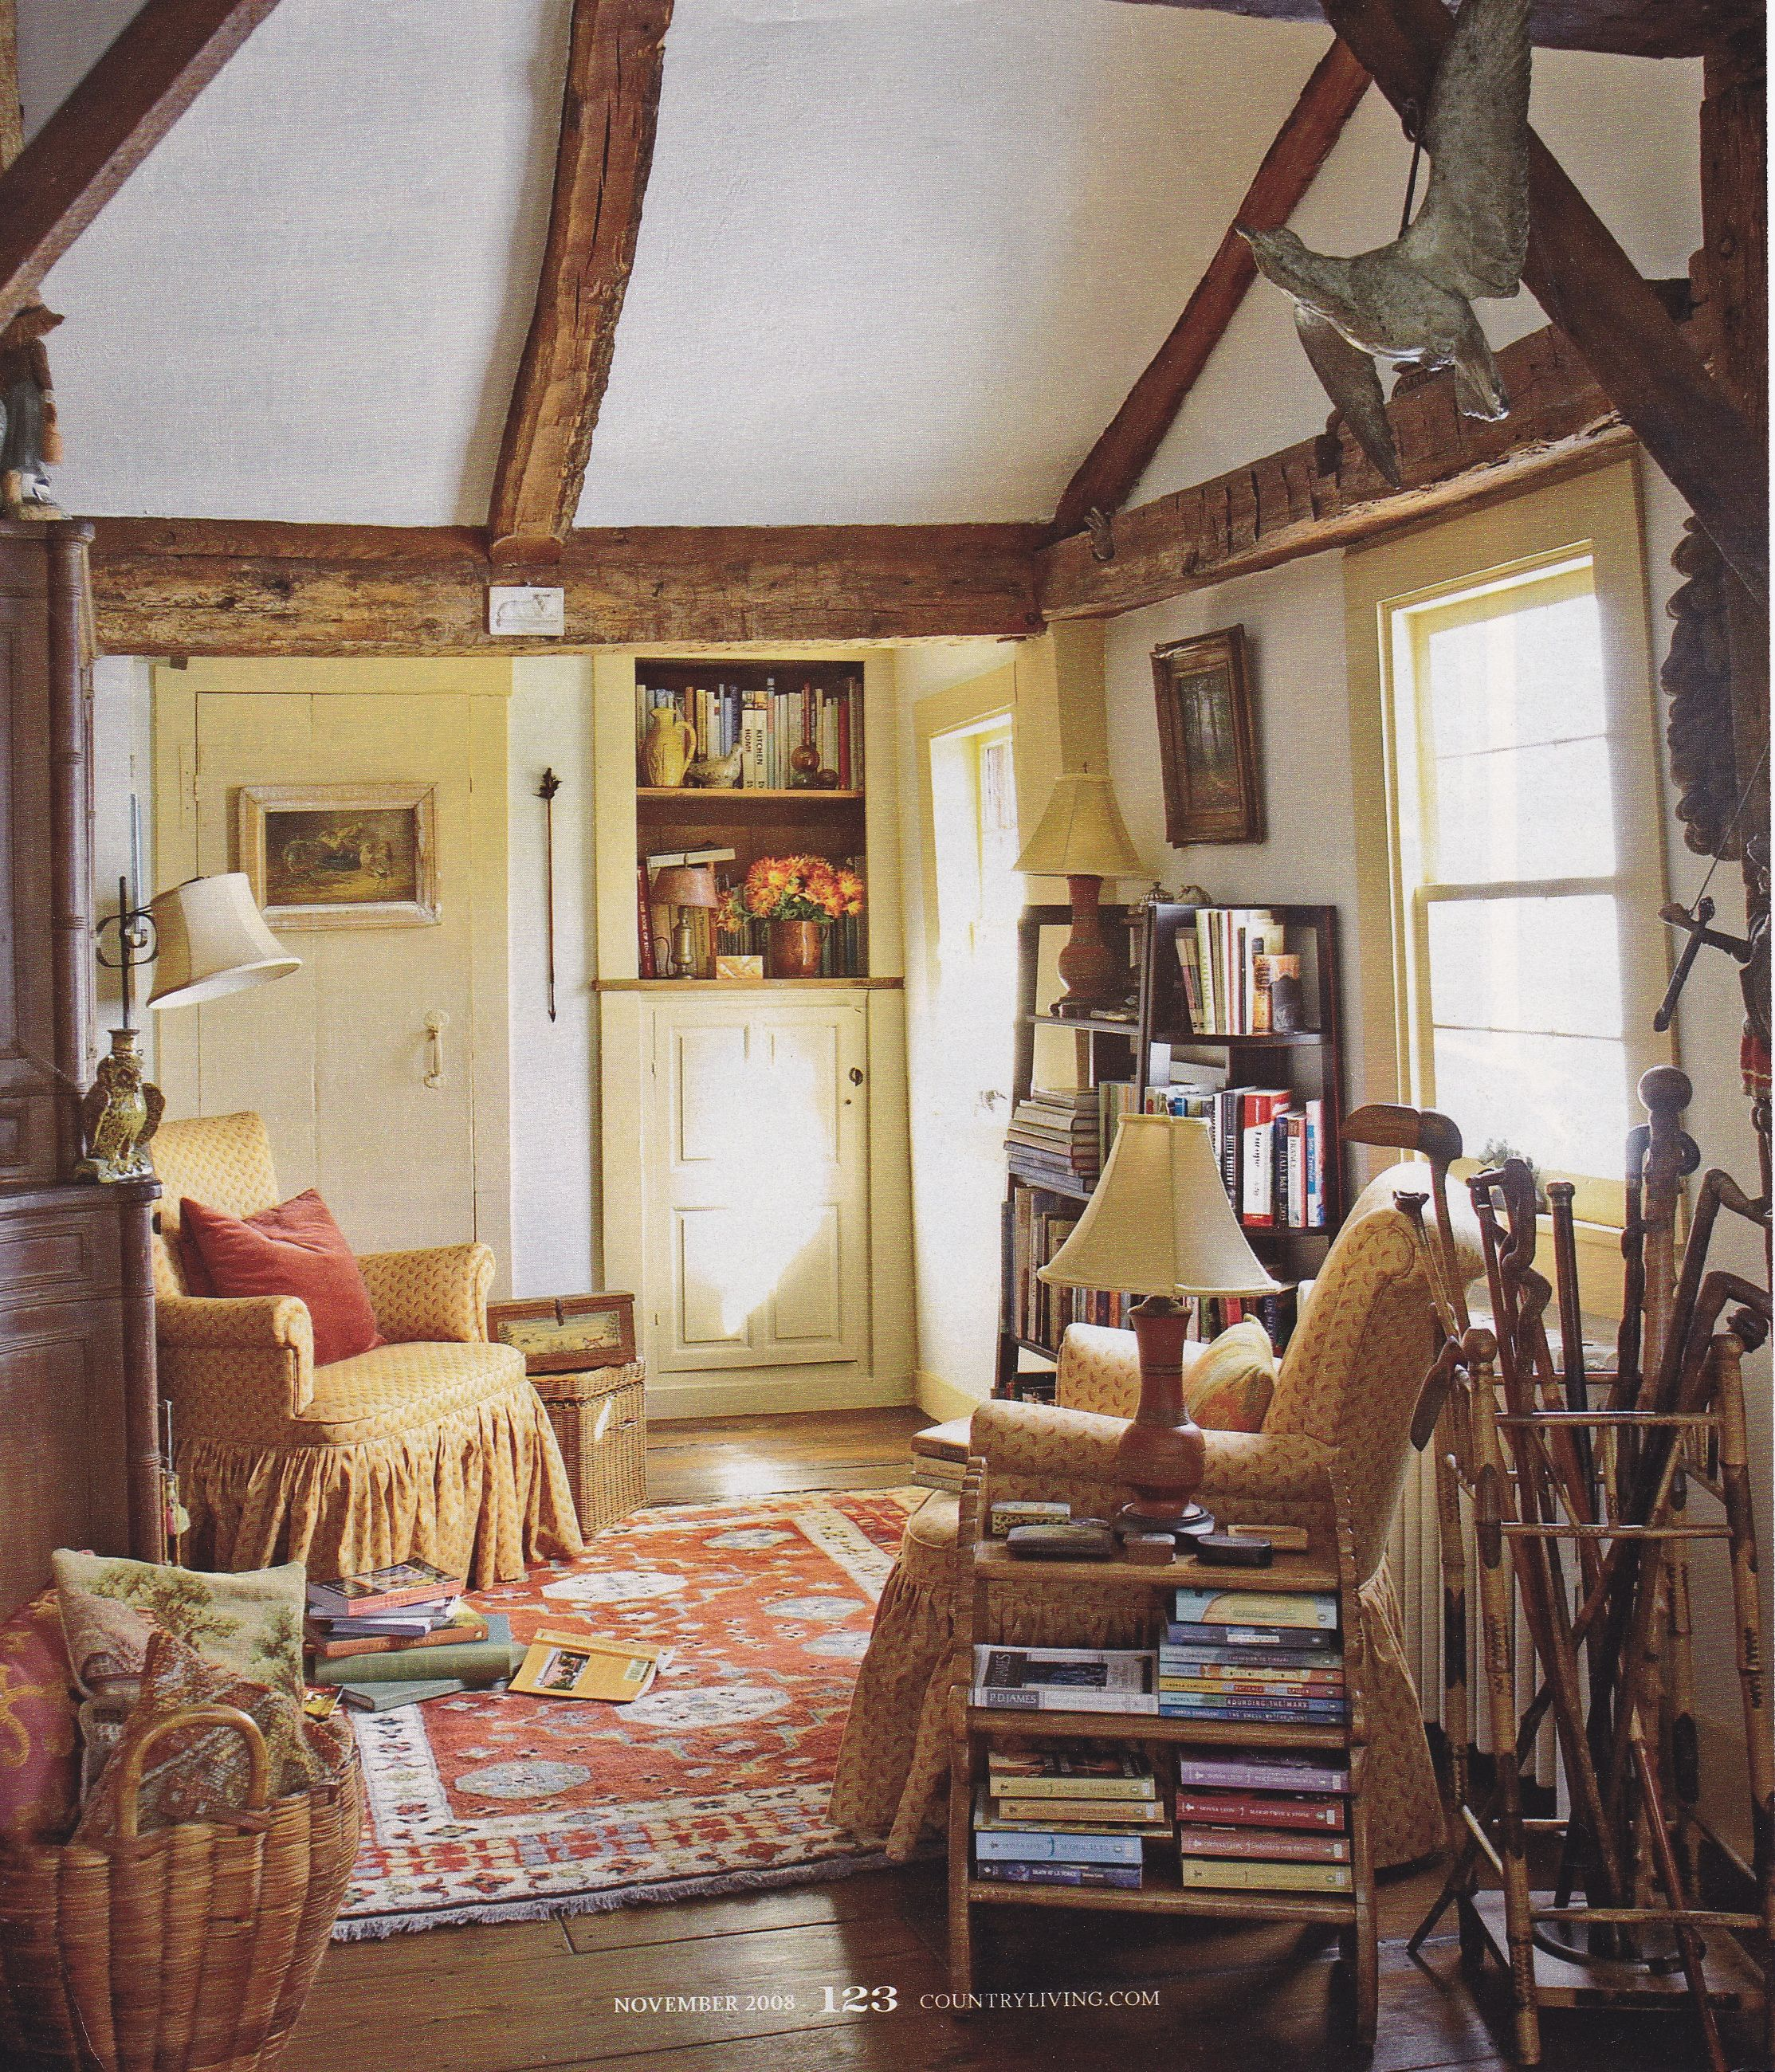 Very Much Like The Style Of This Room English Cottage Hütte - Englischer Landhausstil Deko